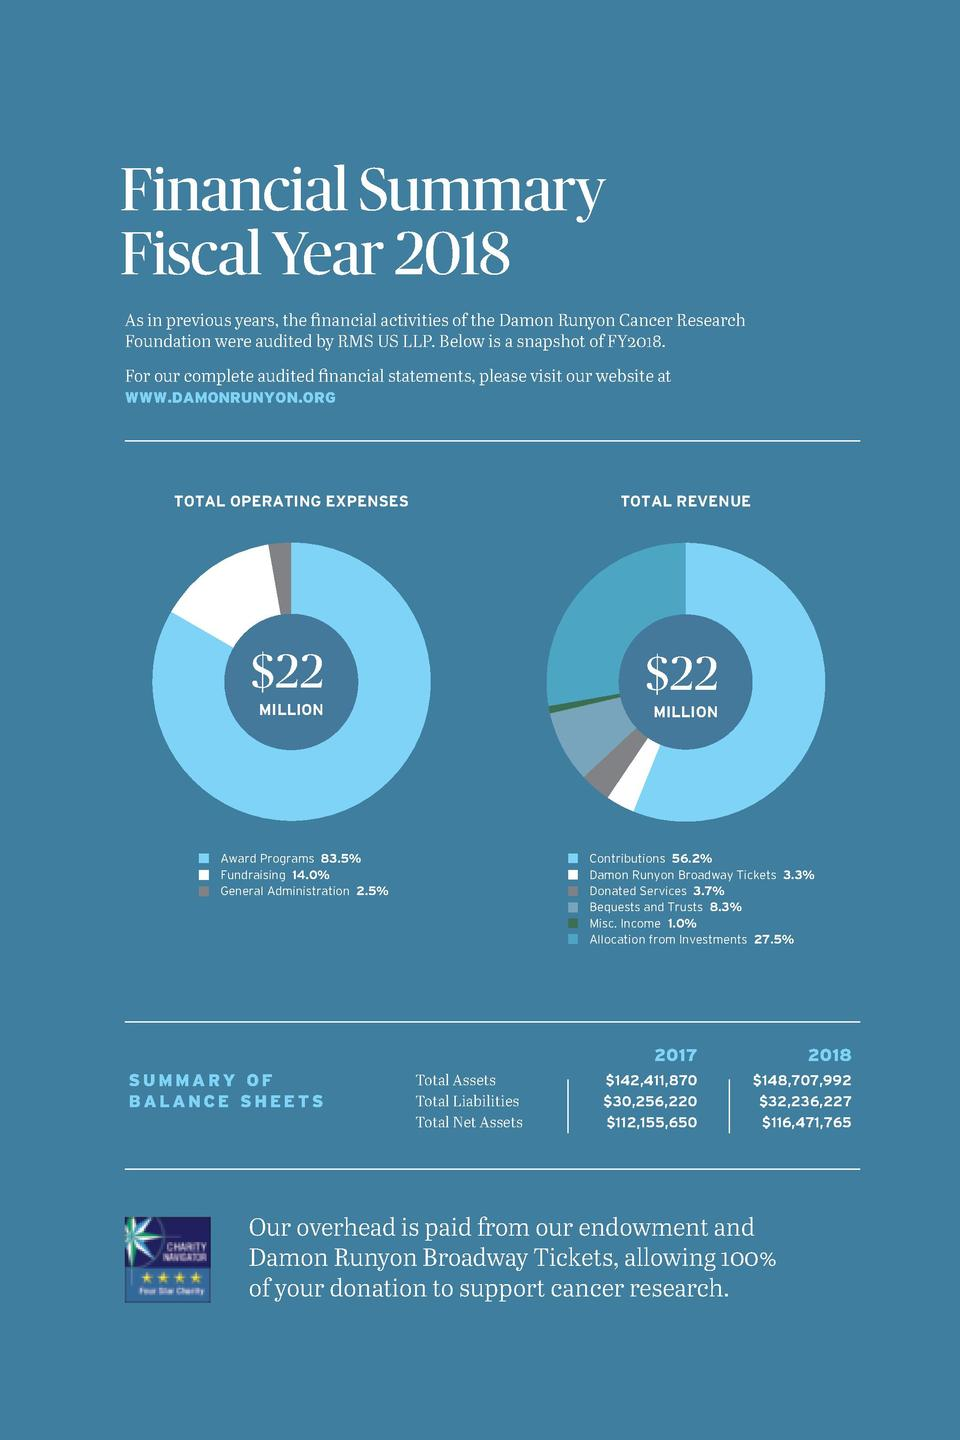 Financial Summary Fiscal Year 2018 As in previous years, the financial activities of the Damon Runyon Cancer Research Foun...